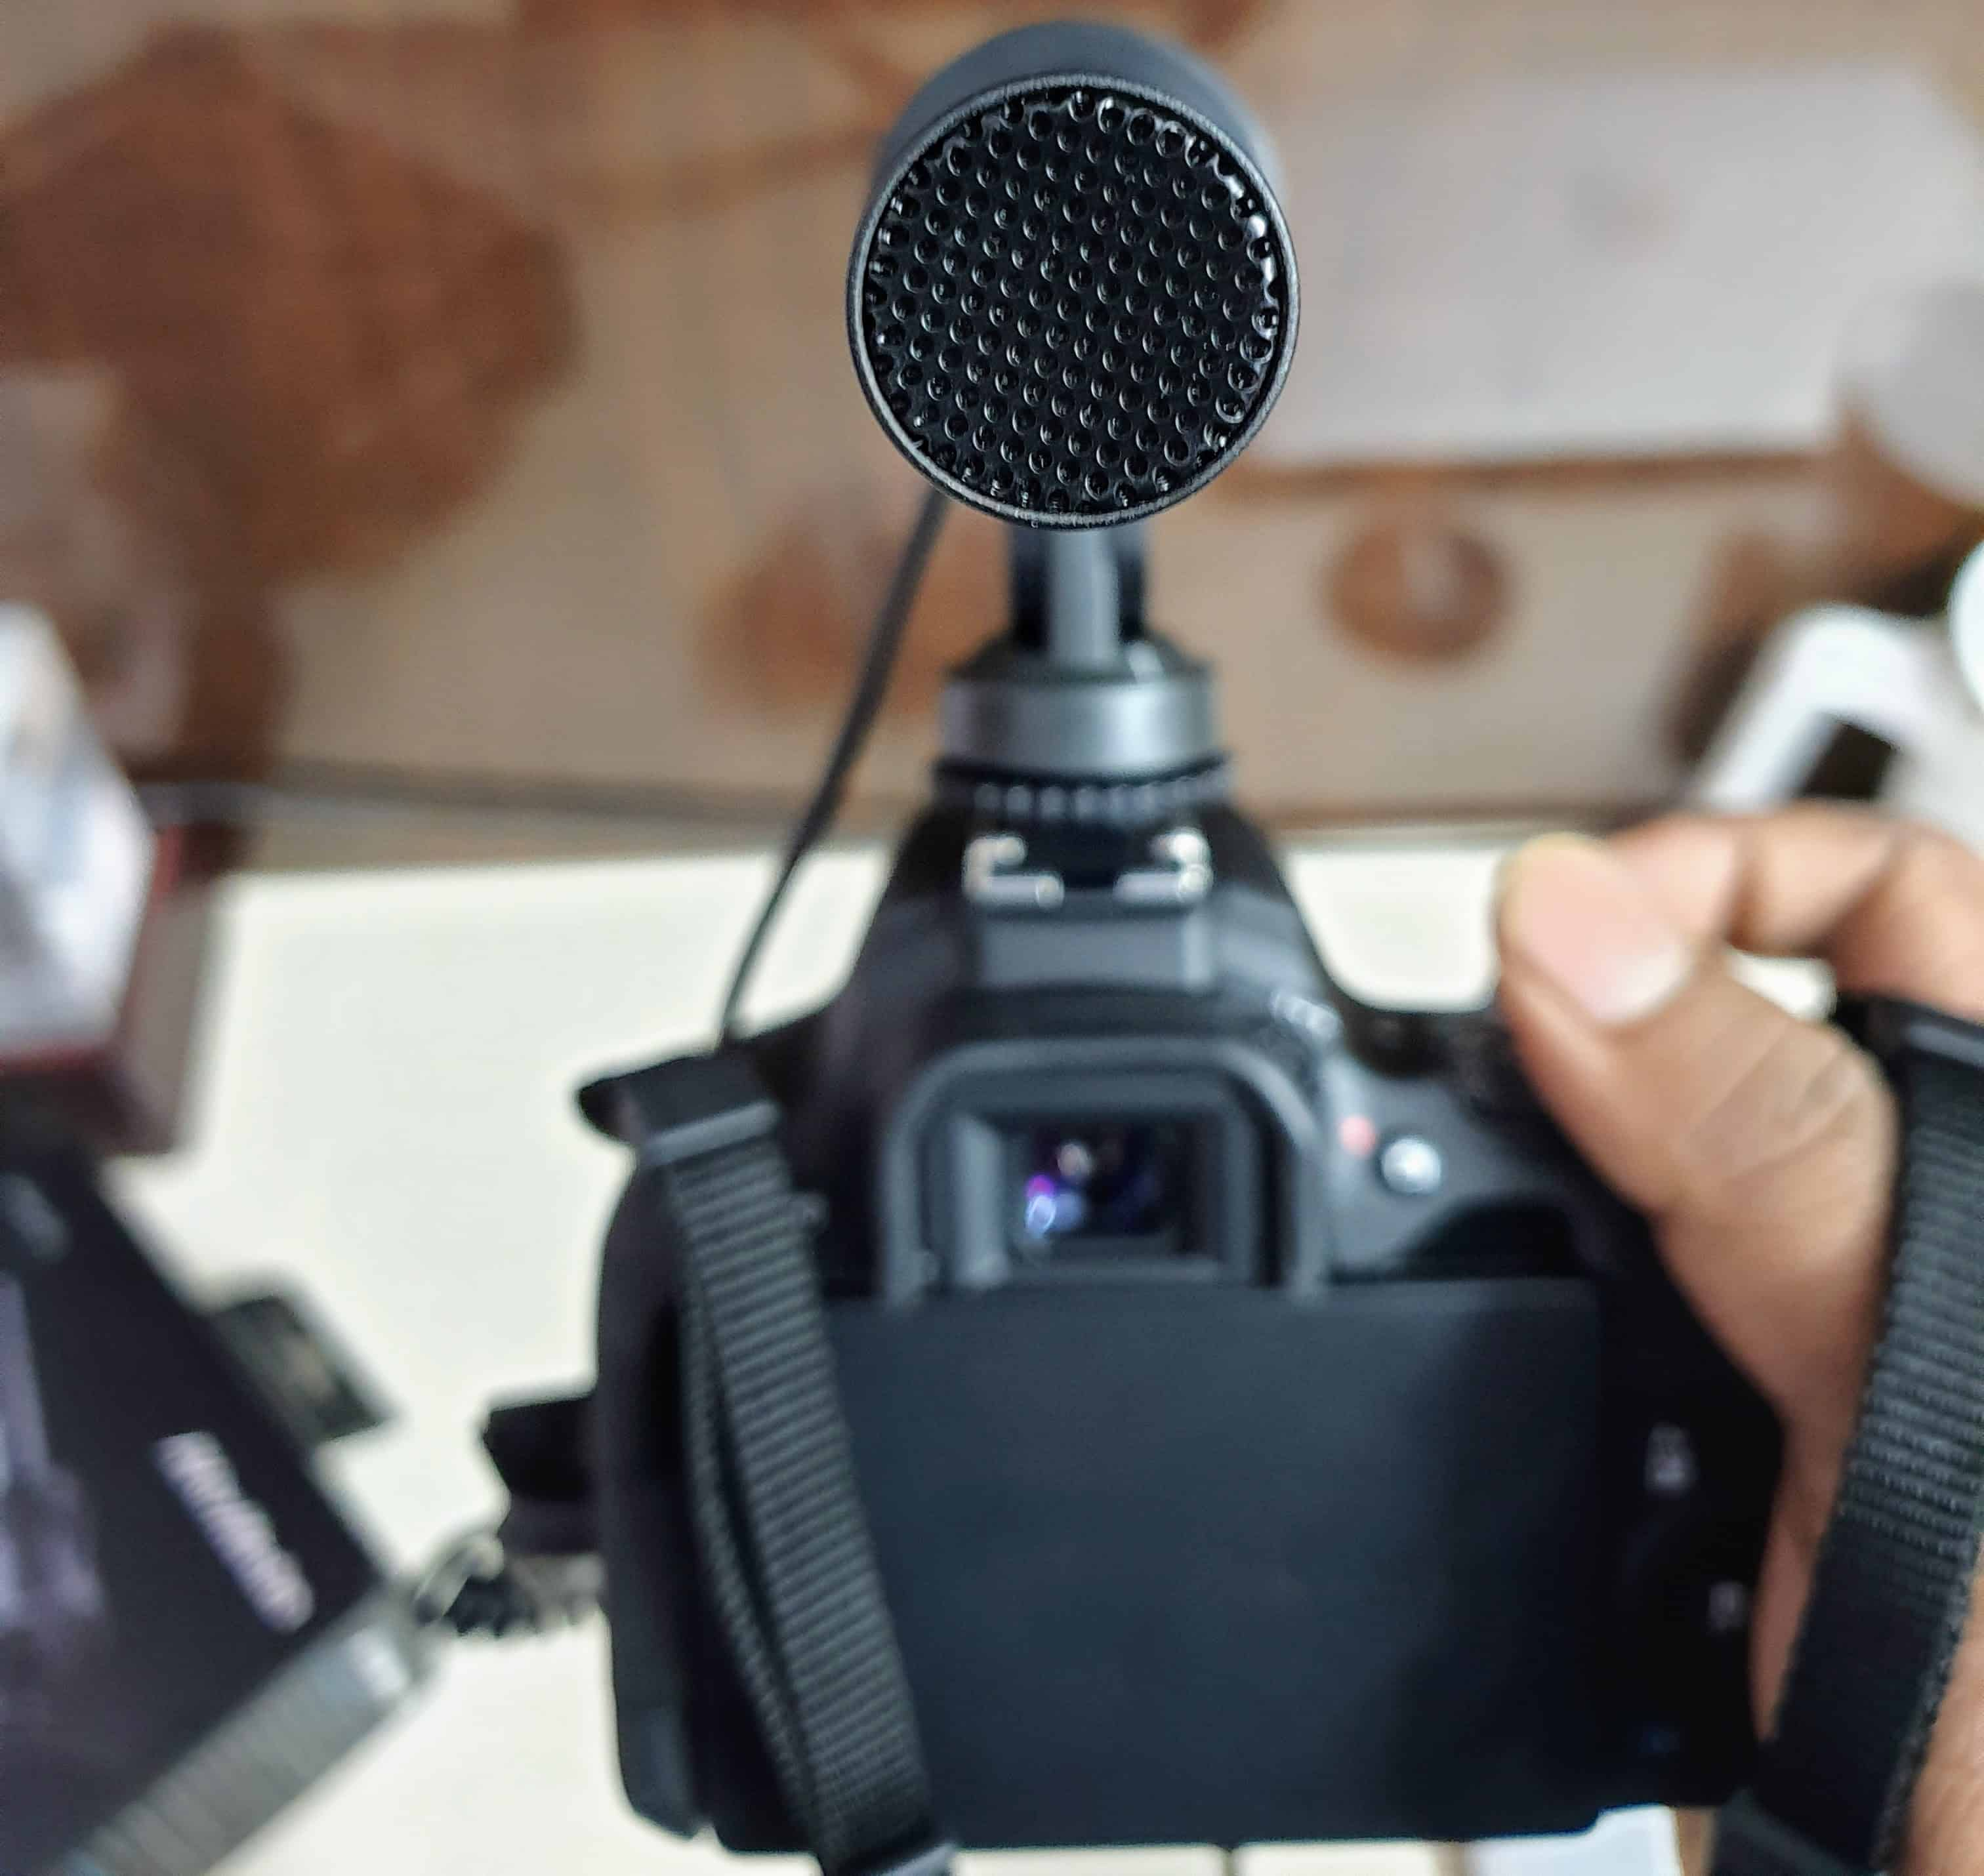 AVerMedia Live Streamer MIC 133 Review - A Must-Have Accessory for Content Creators! - 3